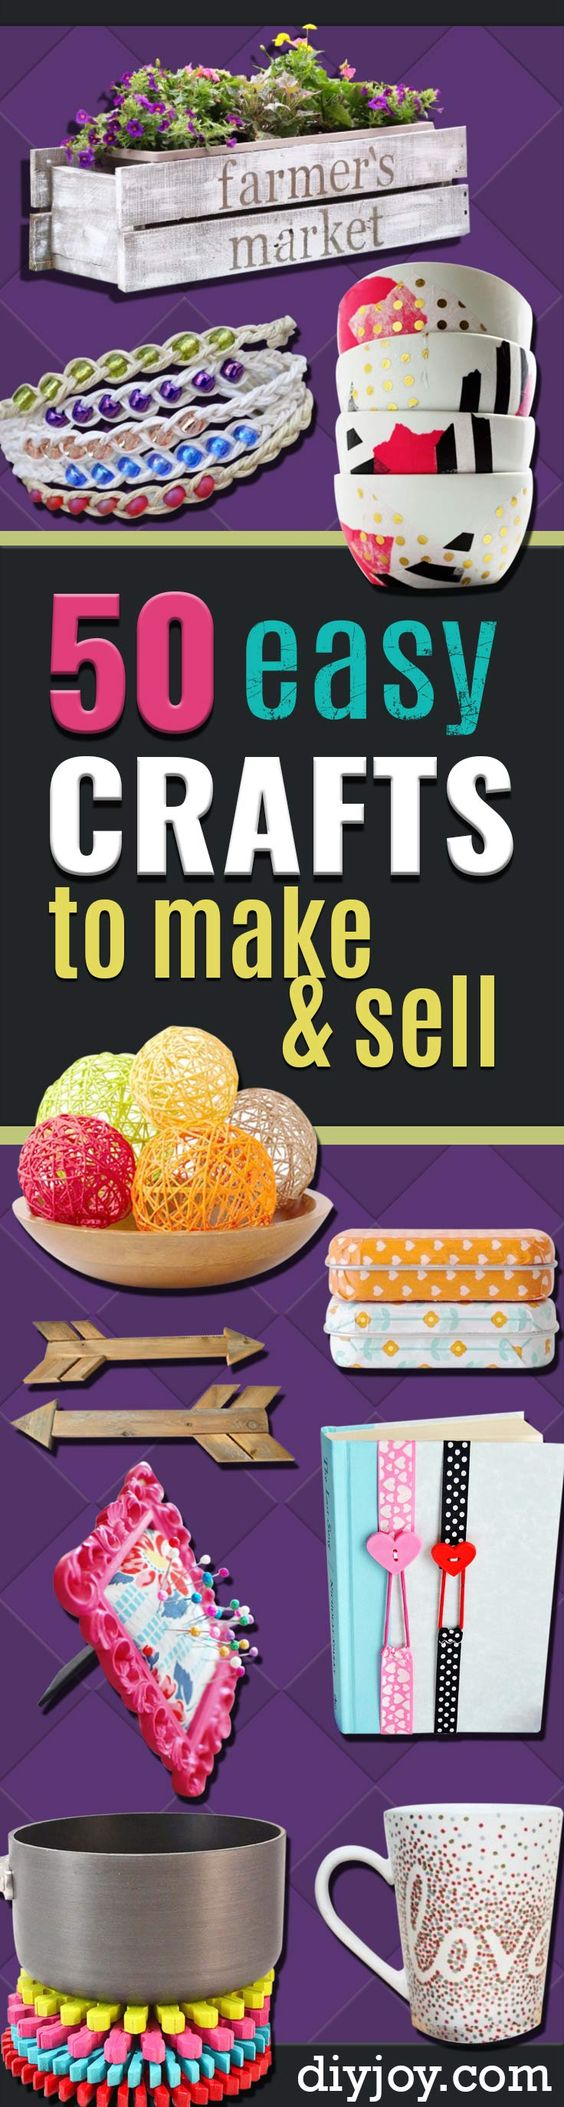 50 easy crafts to make and sell homemade make and sell